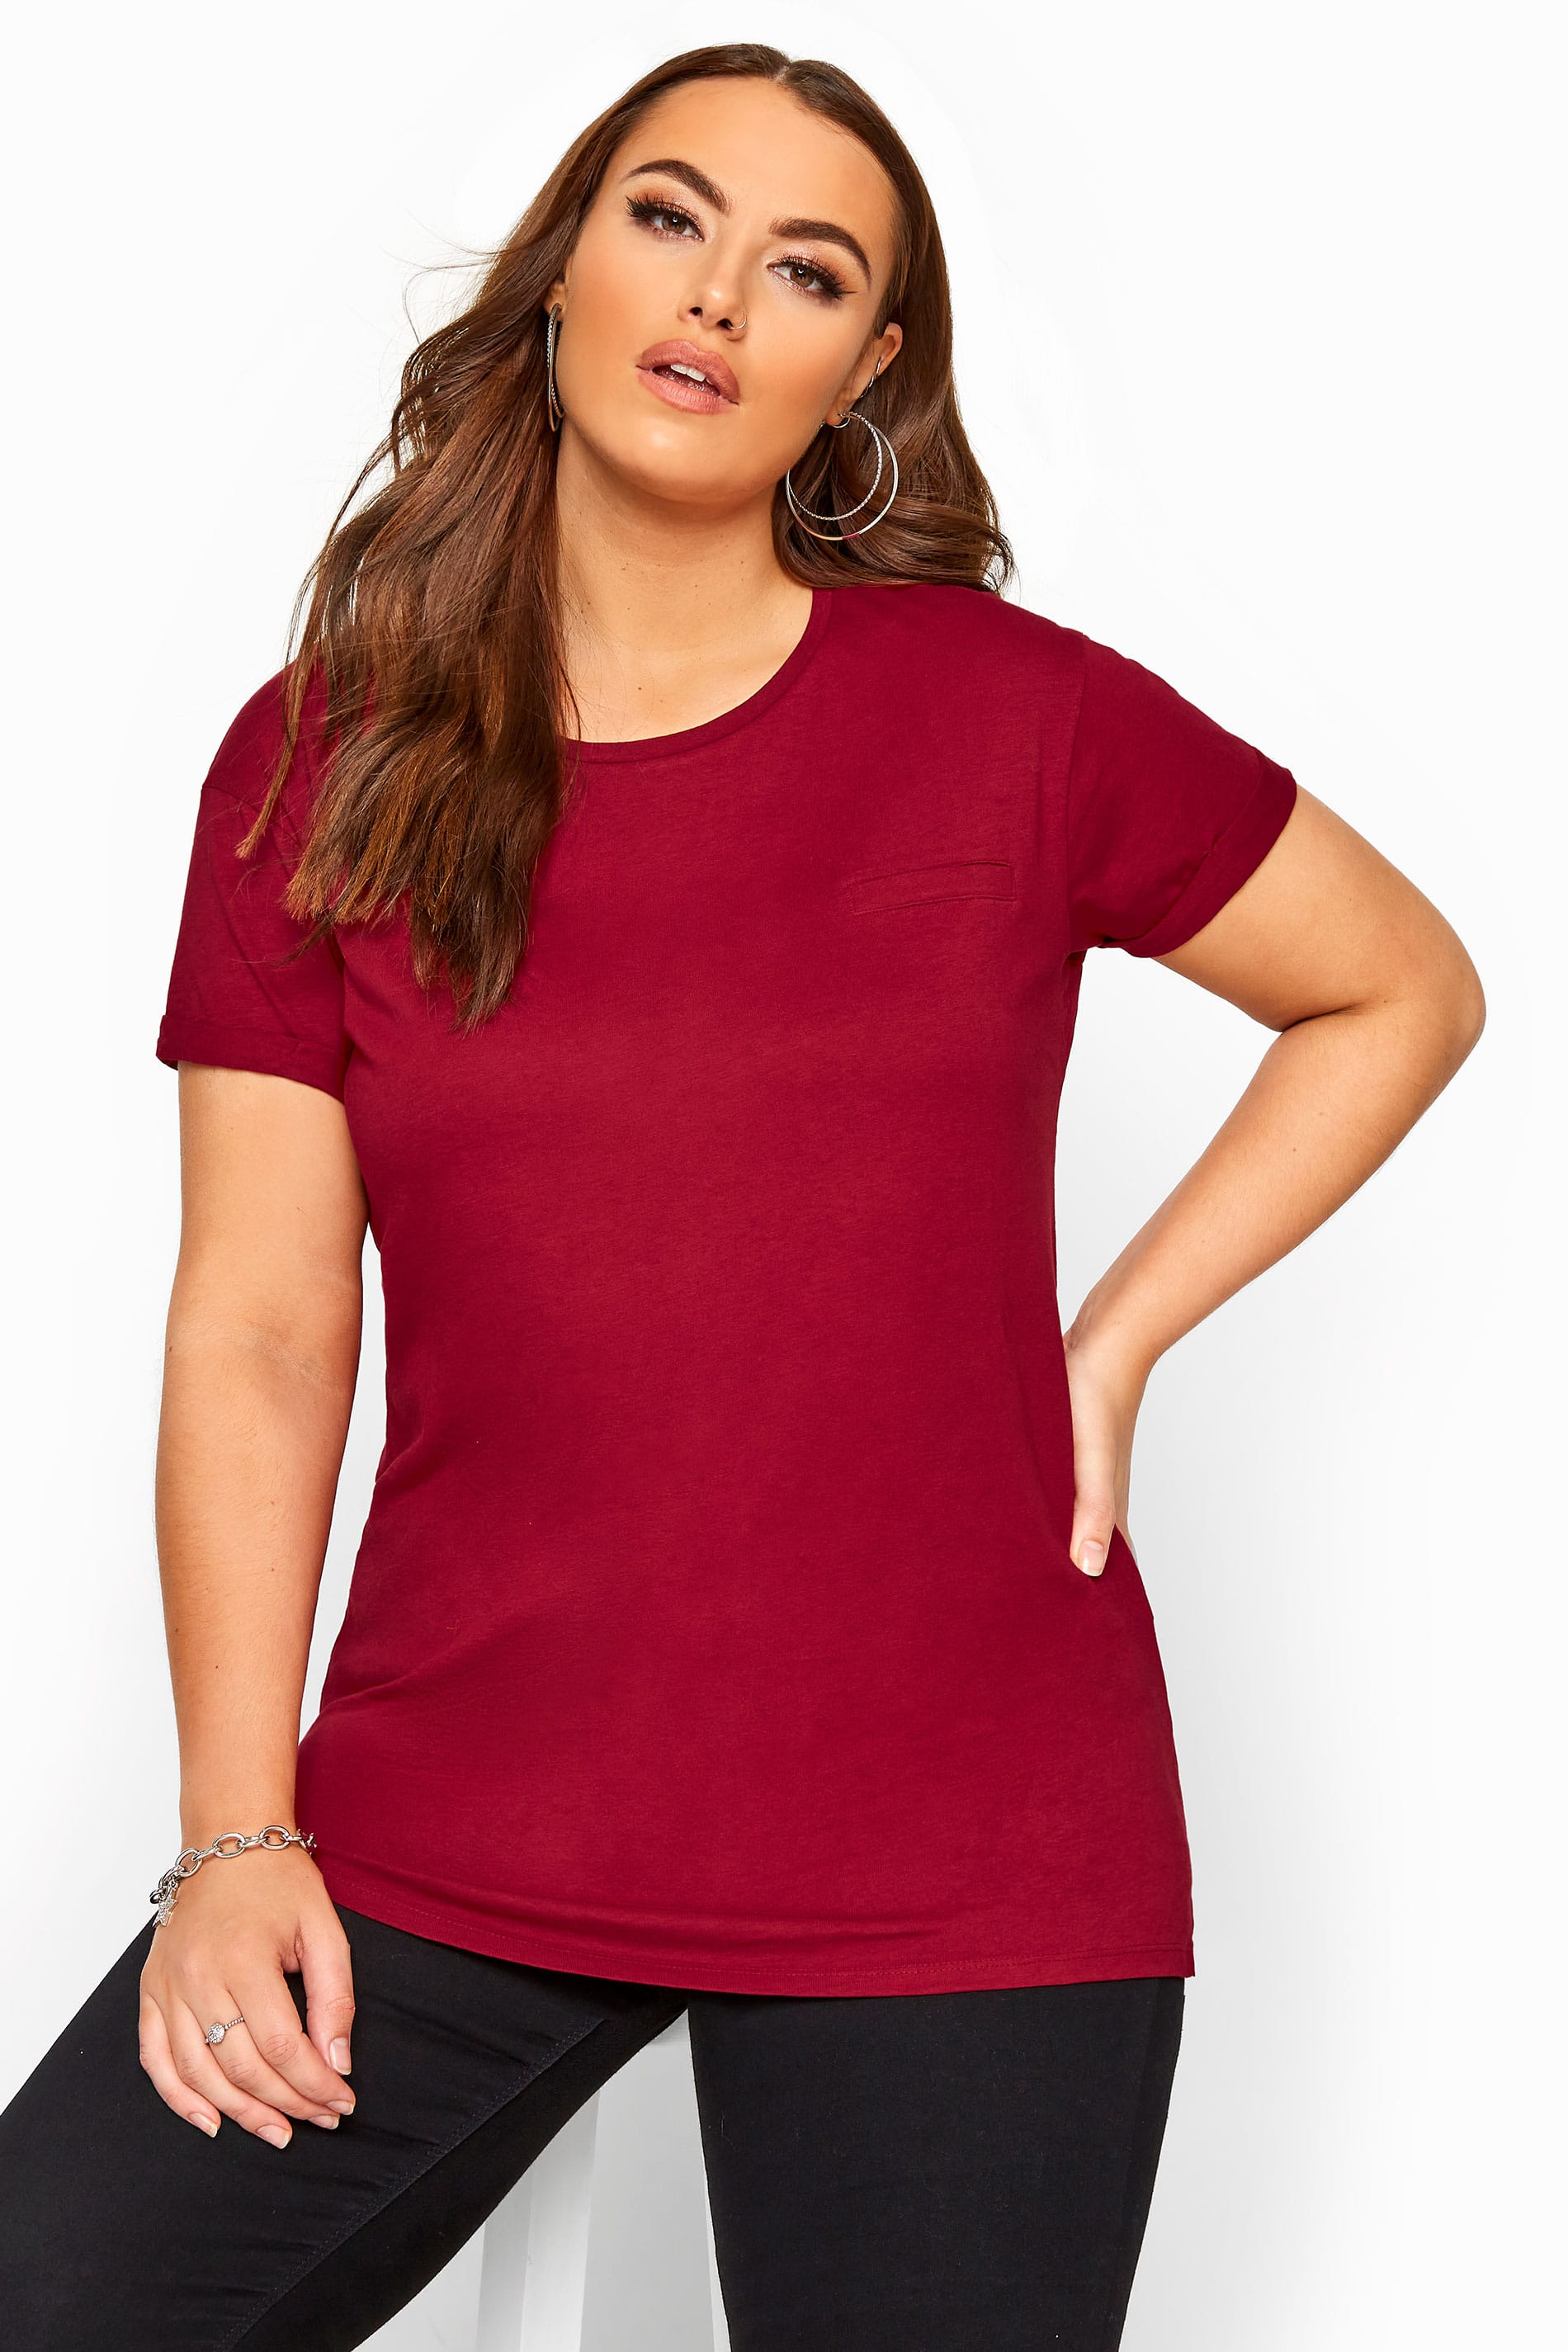 Cranberry Red Pocket T-Shirt